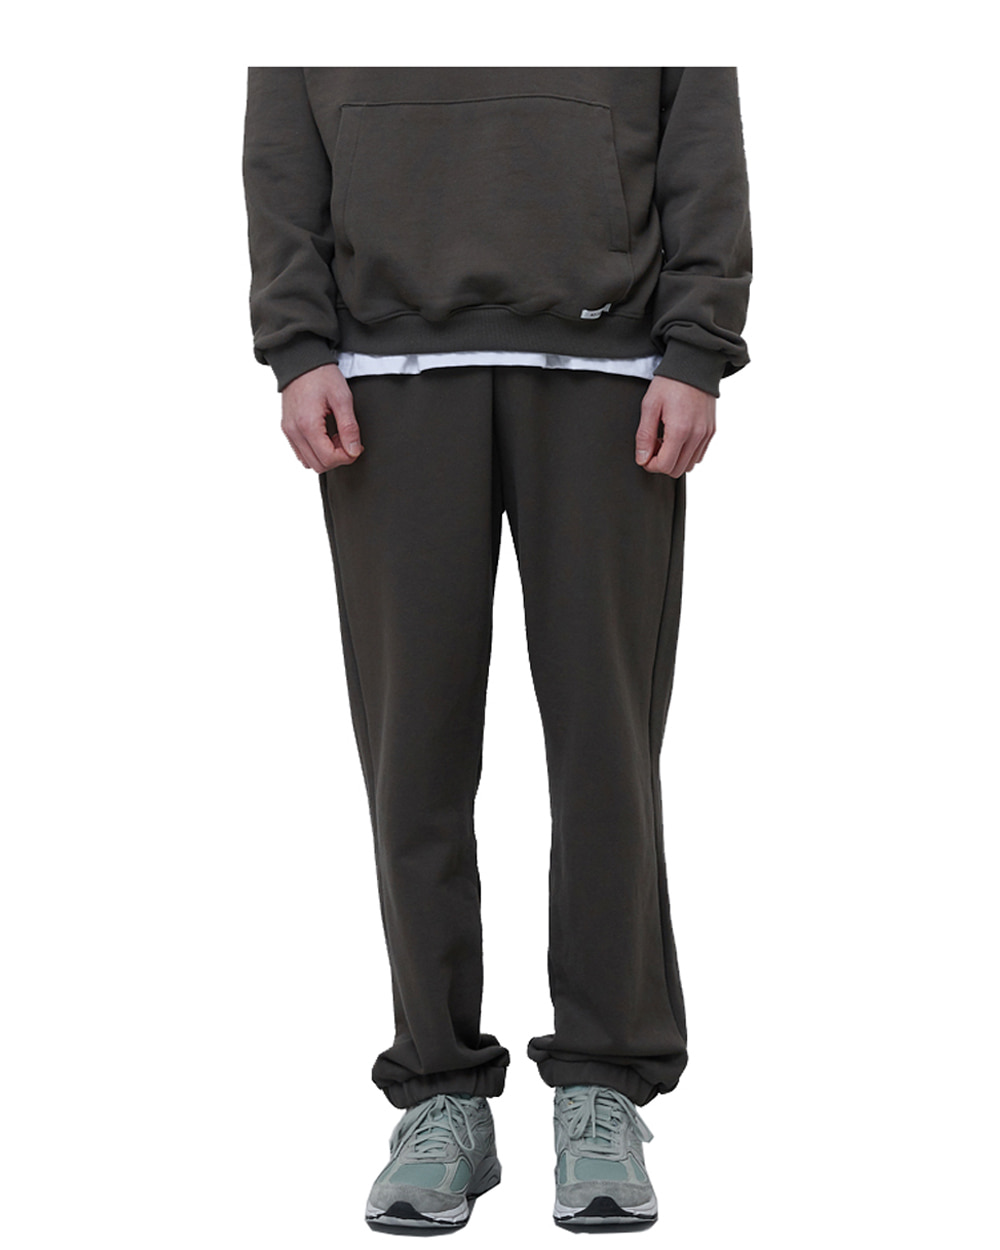 에이카화이트 FINEST COTTON SWEATPANTS (Olive)